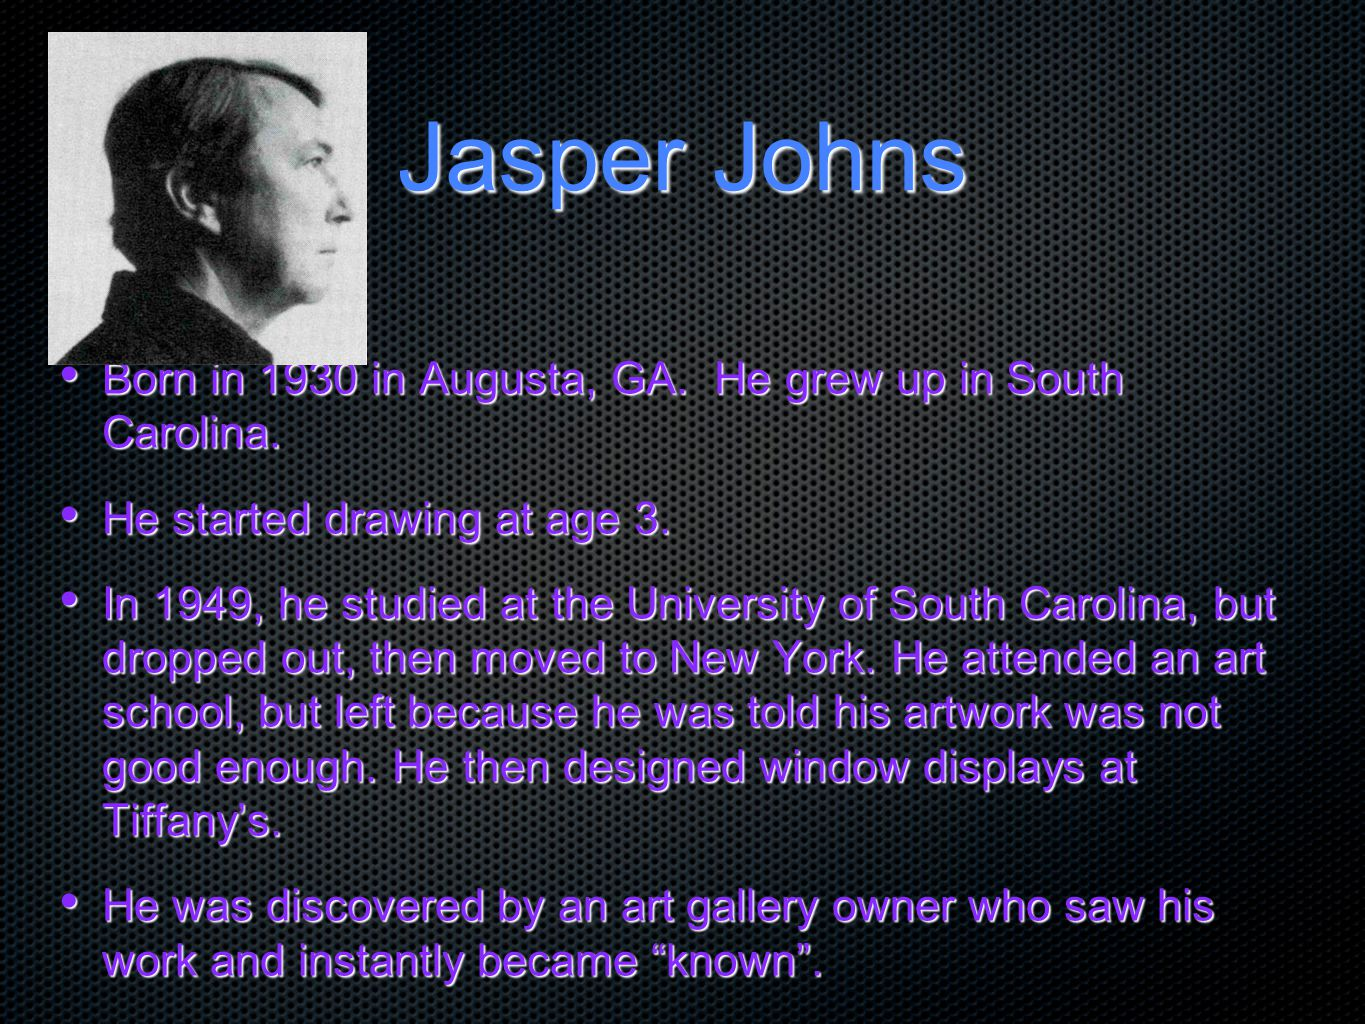 Jasper Johns Born in 1930 in Augusta, GA. He grew up in South Carolina. He started drawing at age 3.